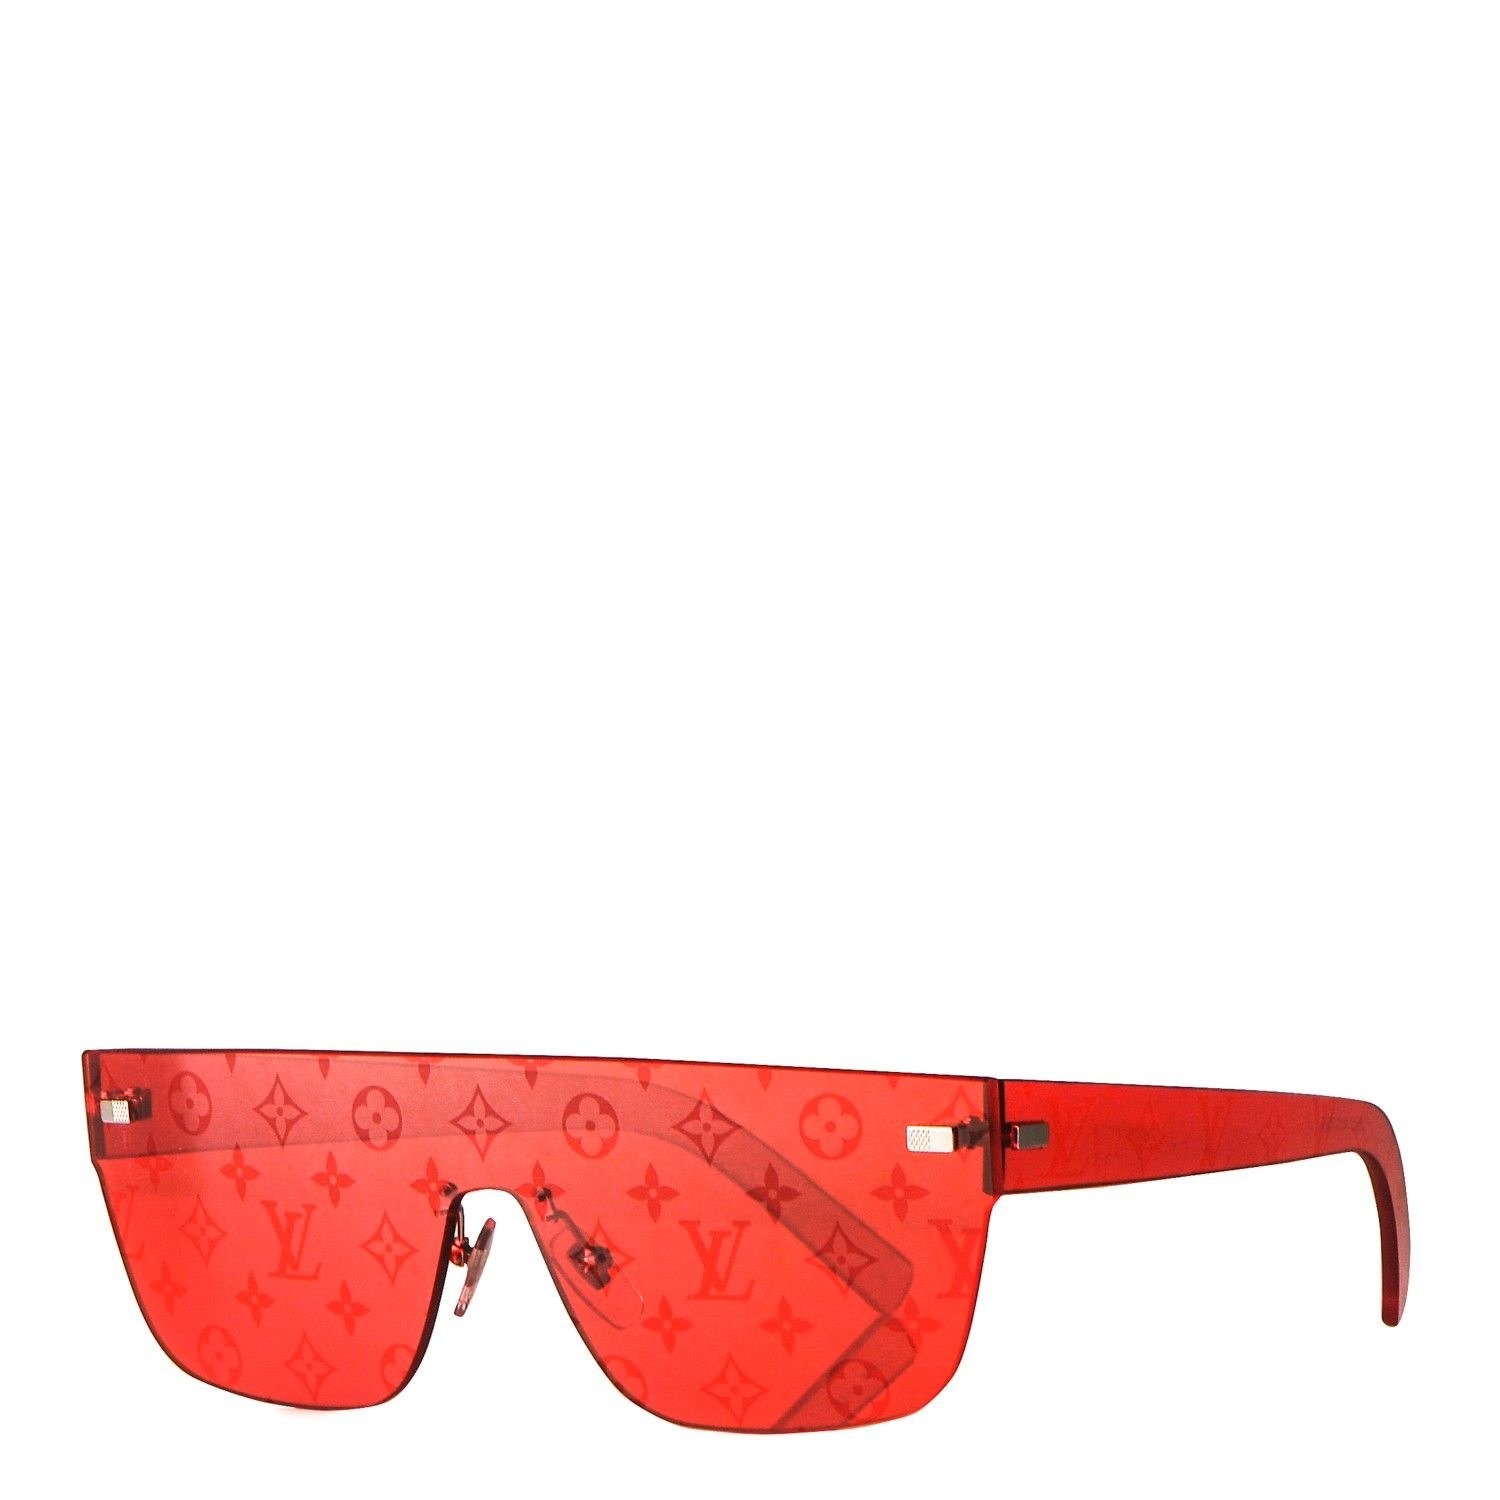 da6cf62ba5 This is an authentic pair of LOUIS VUITTON X Supreme City Mask Sunglasses  Z0992U in Coquelicot Red. These celebrity-coveted shield sunglasses are  featured ...